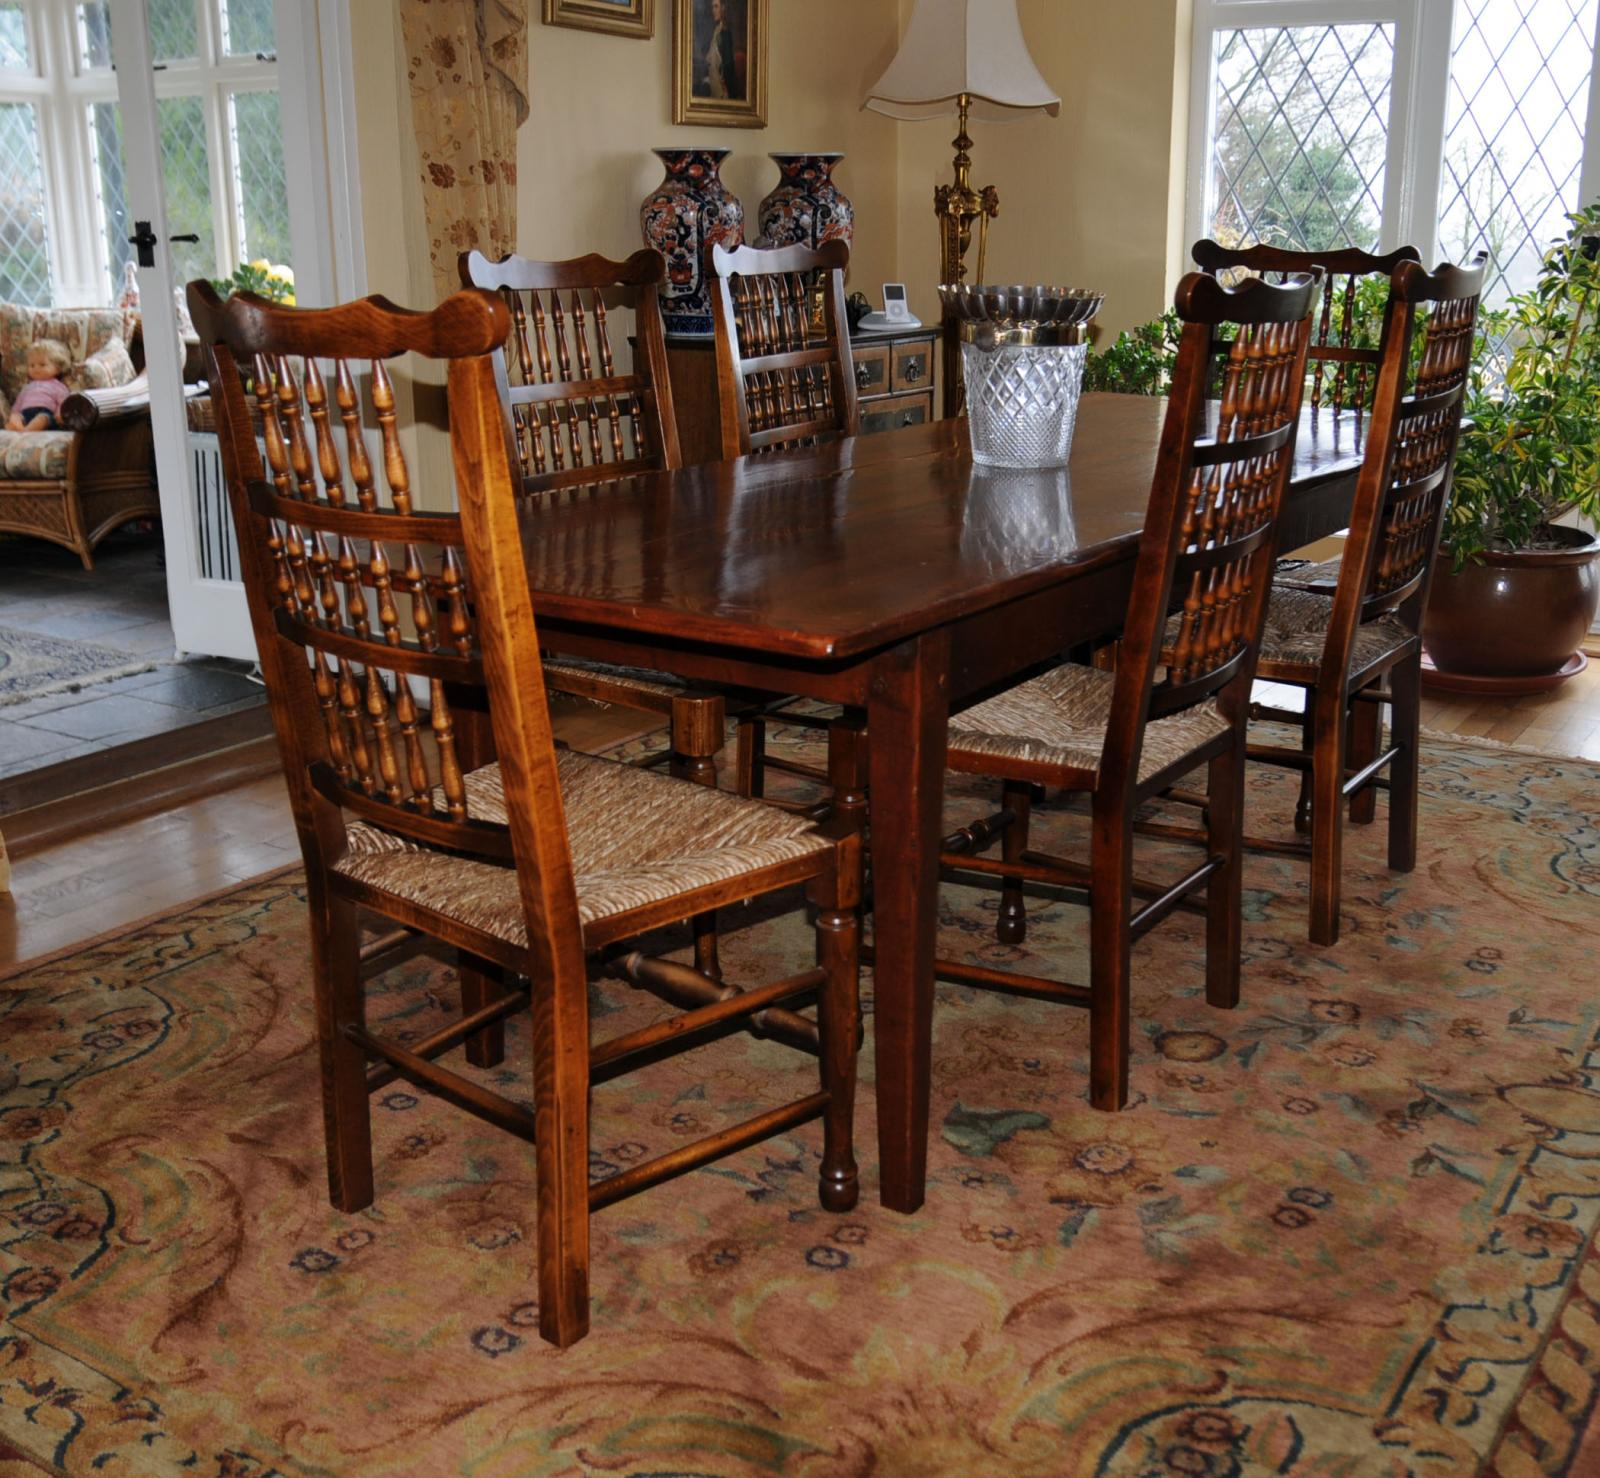 oak kitchen chairs Store Categories